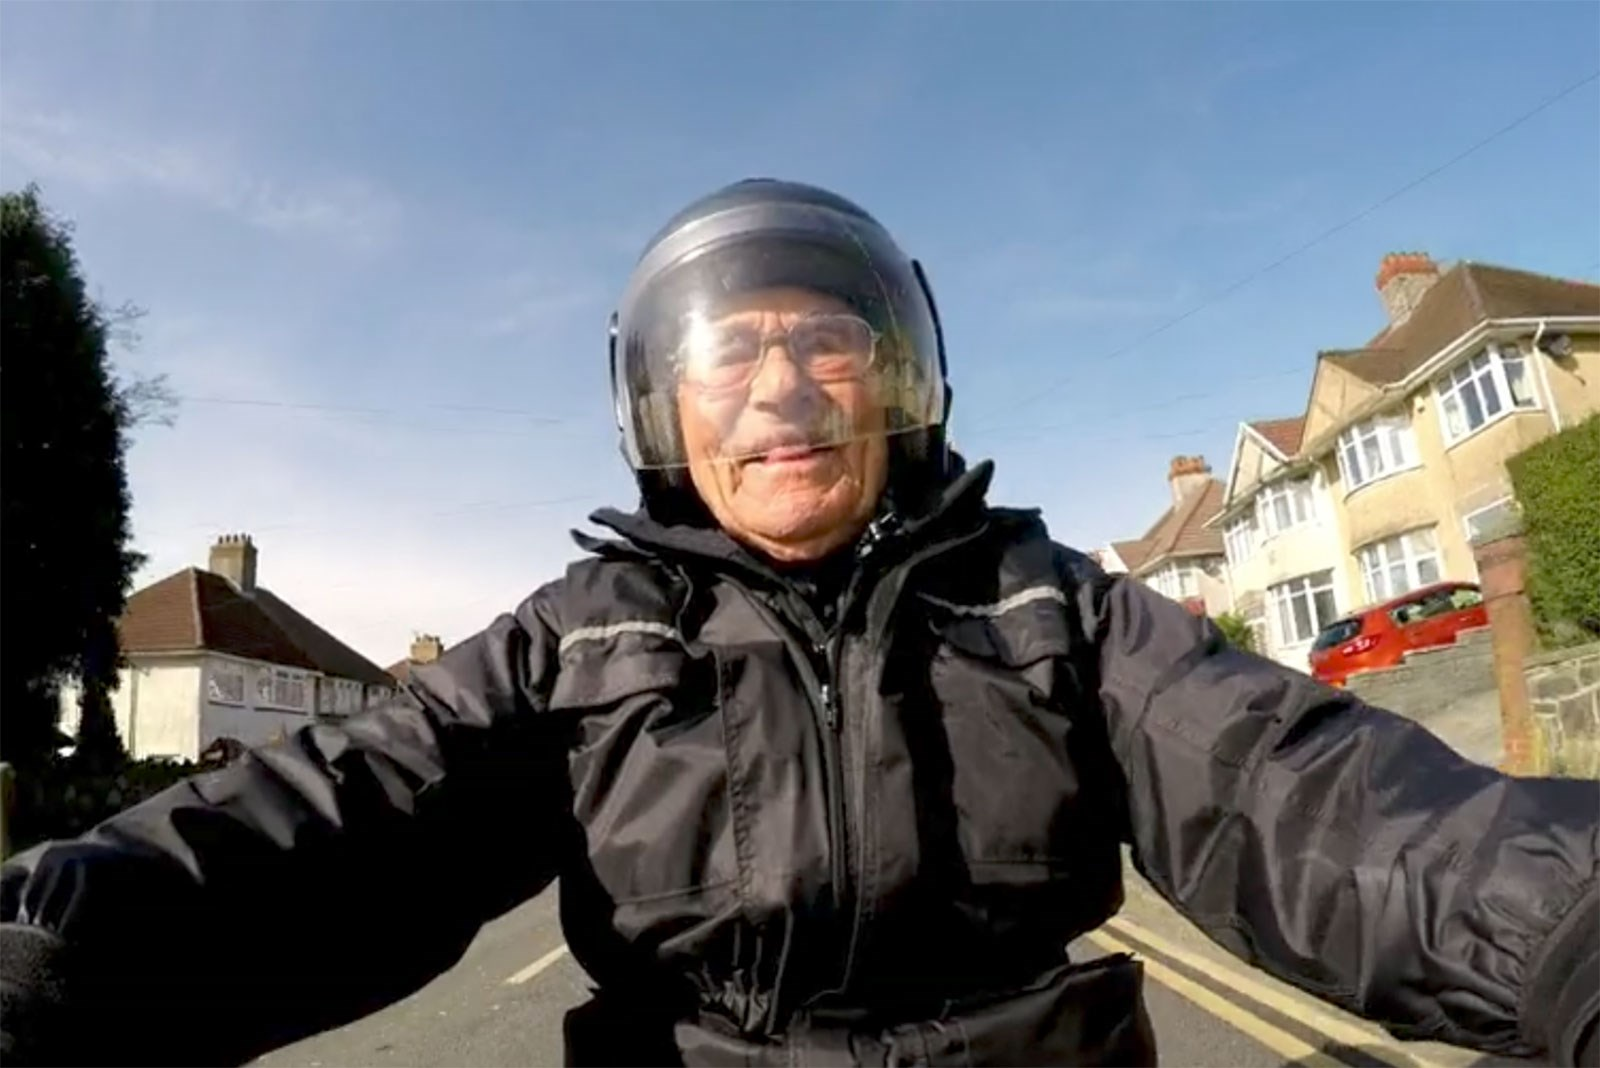 101 year old motorcyclist